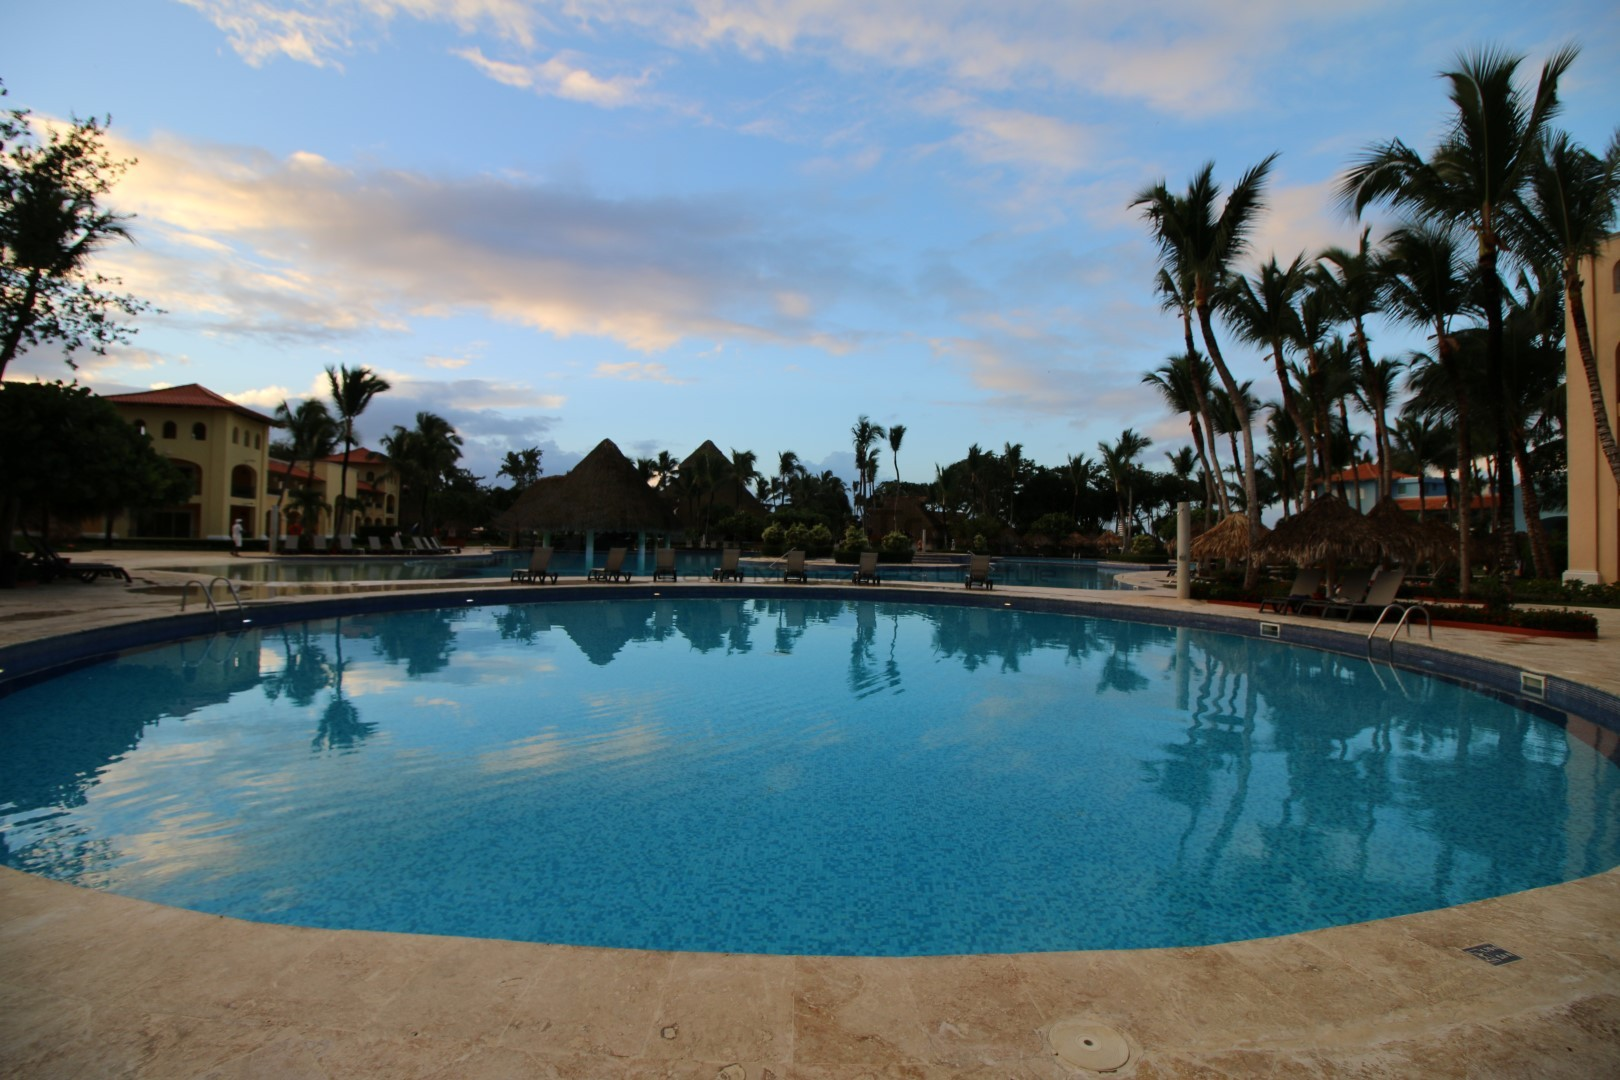 Iberostar_Hacienda_Dominicus_Hotel_Pool_Beach